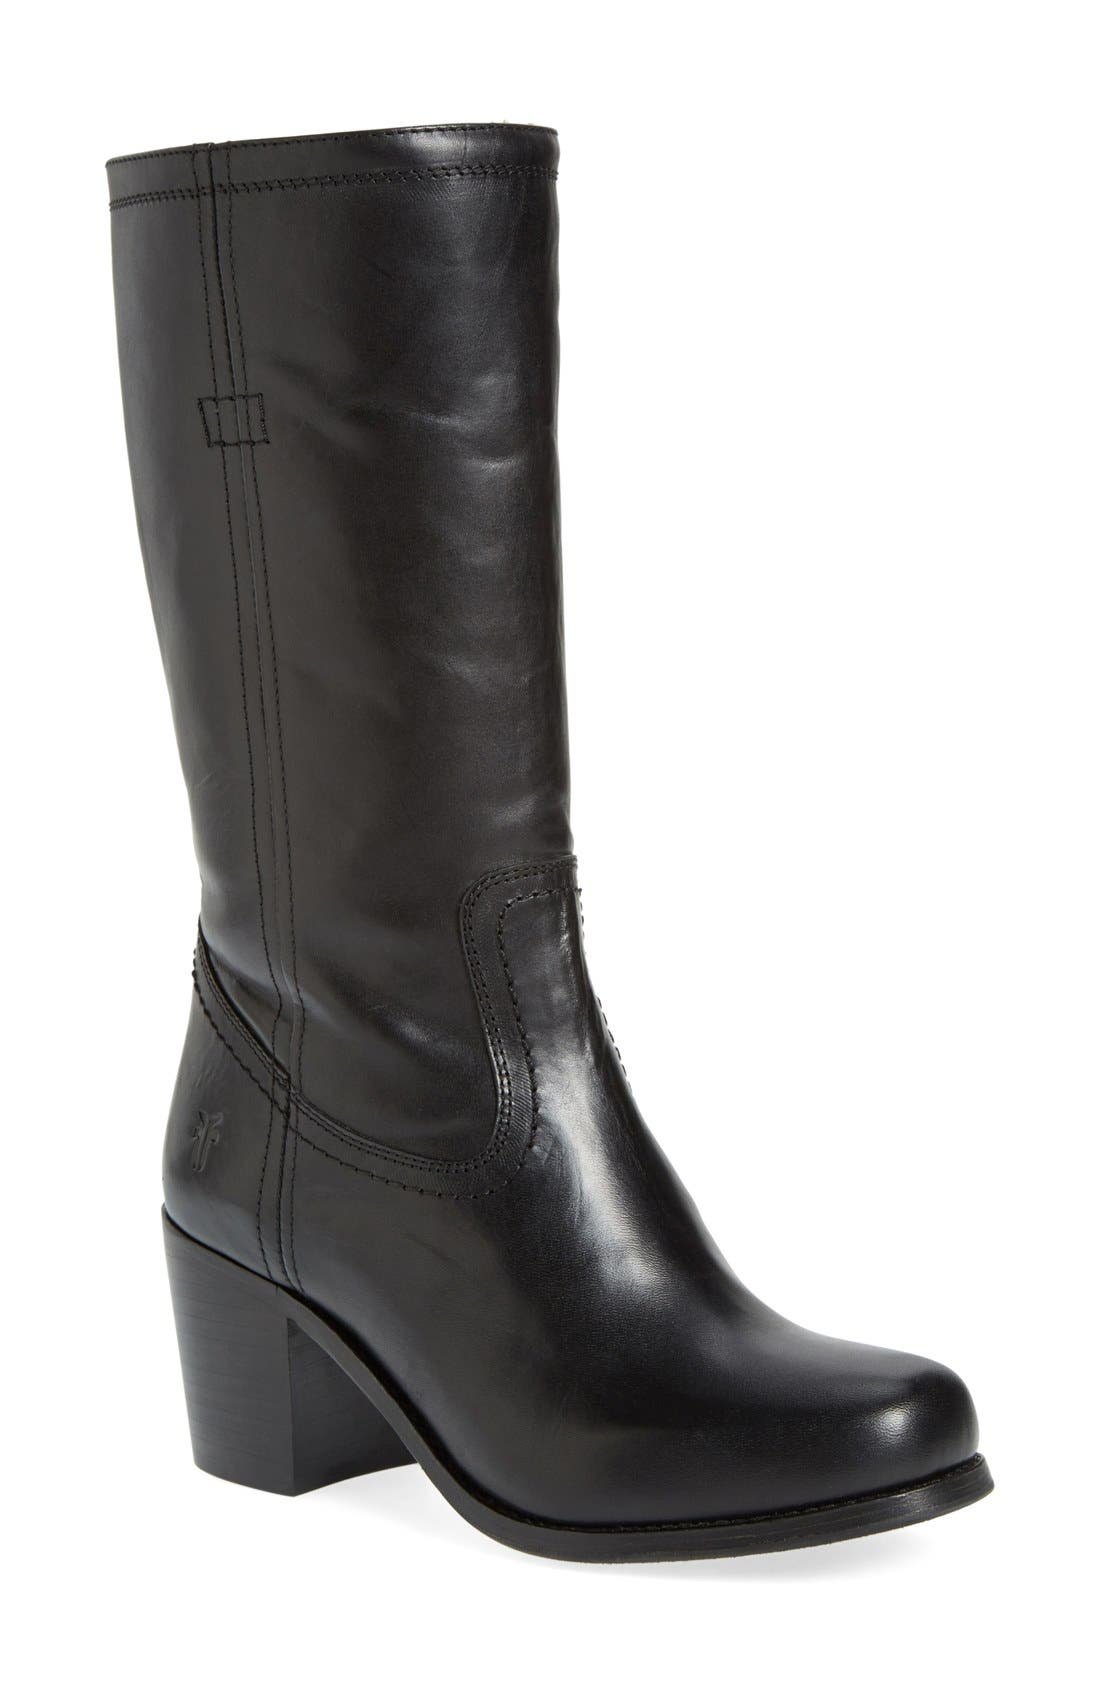 FRYE 'Kendall' Boot, Main, color, 001